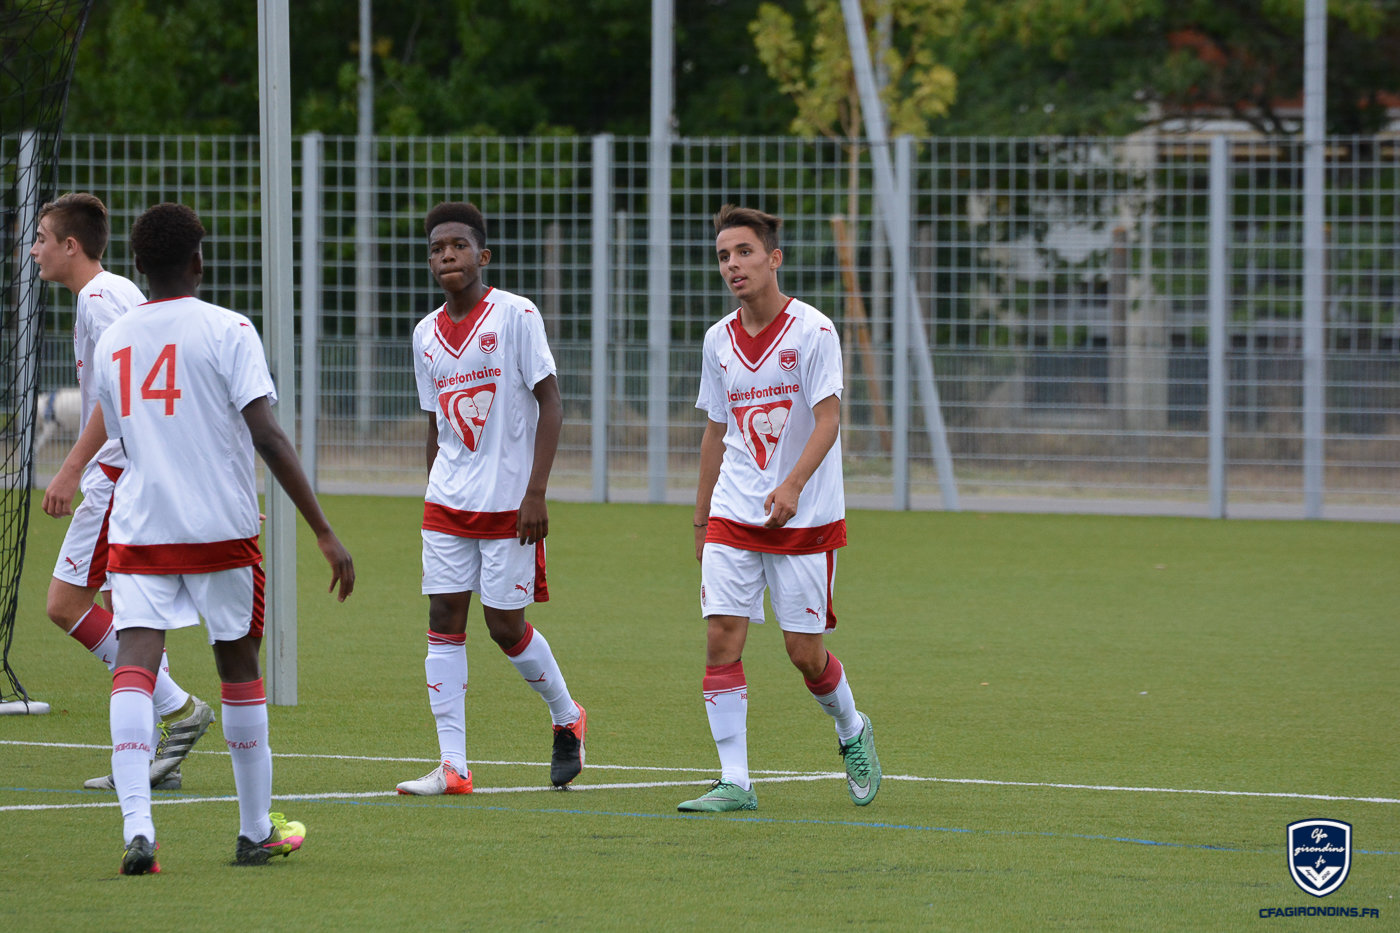 Cfa Girondins : Match nul en amical contre Toulouse - Formation Girondins